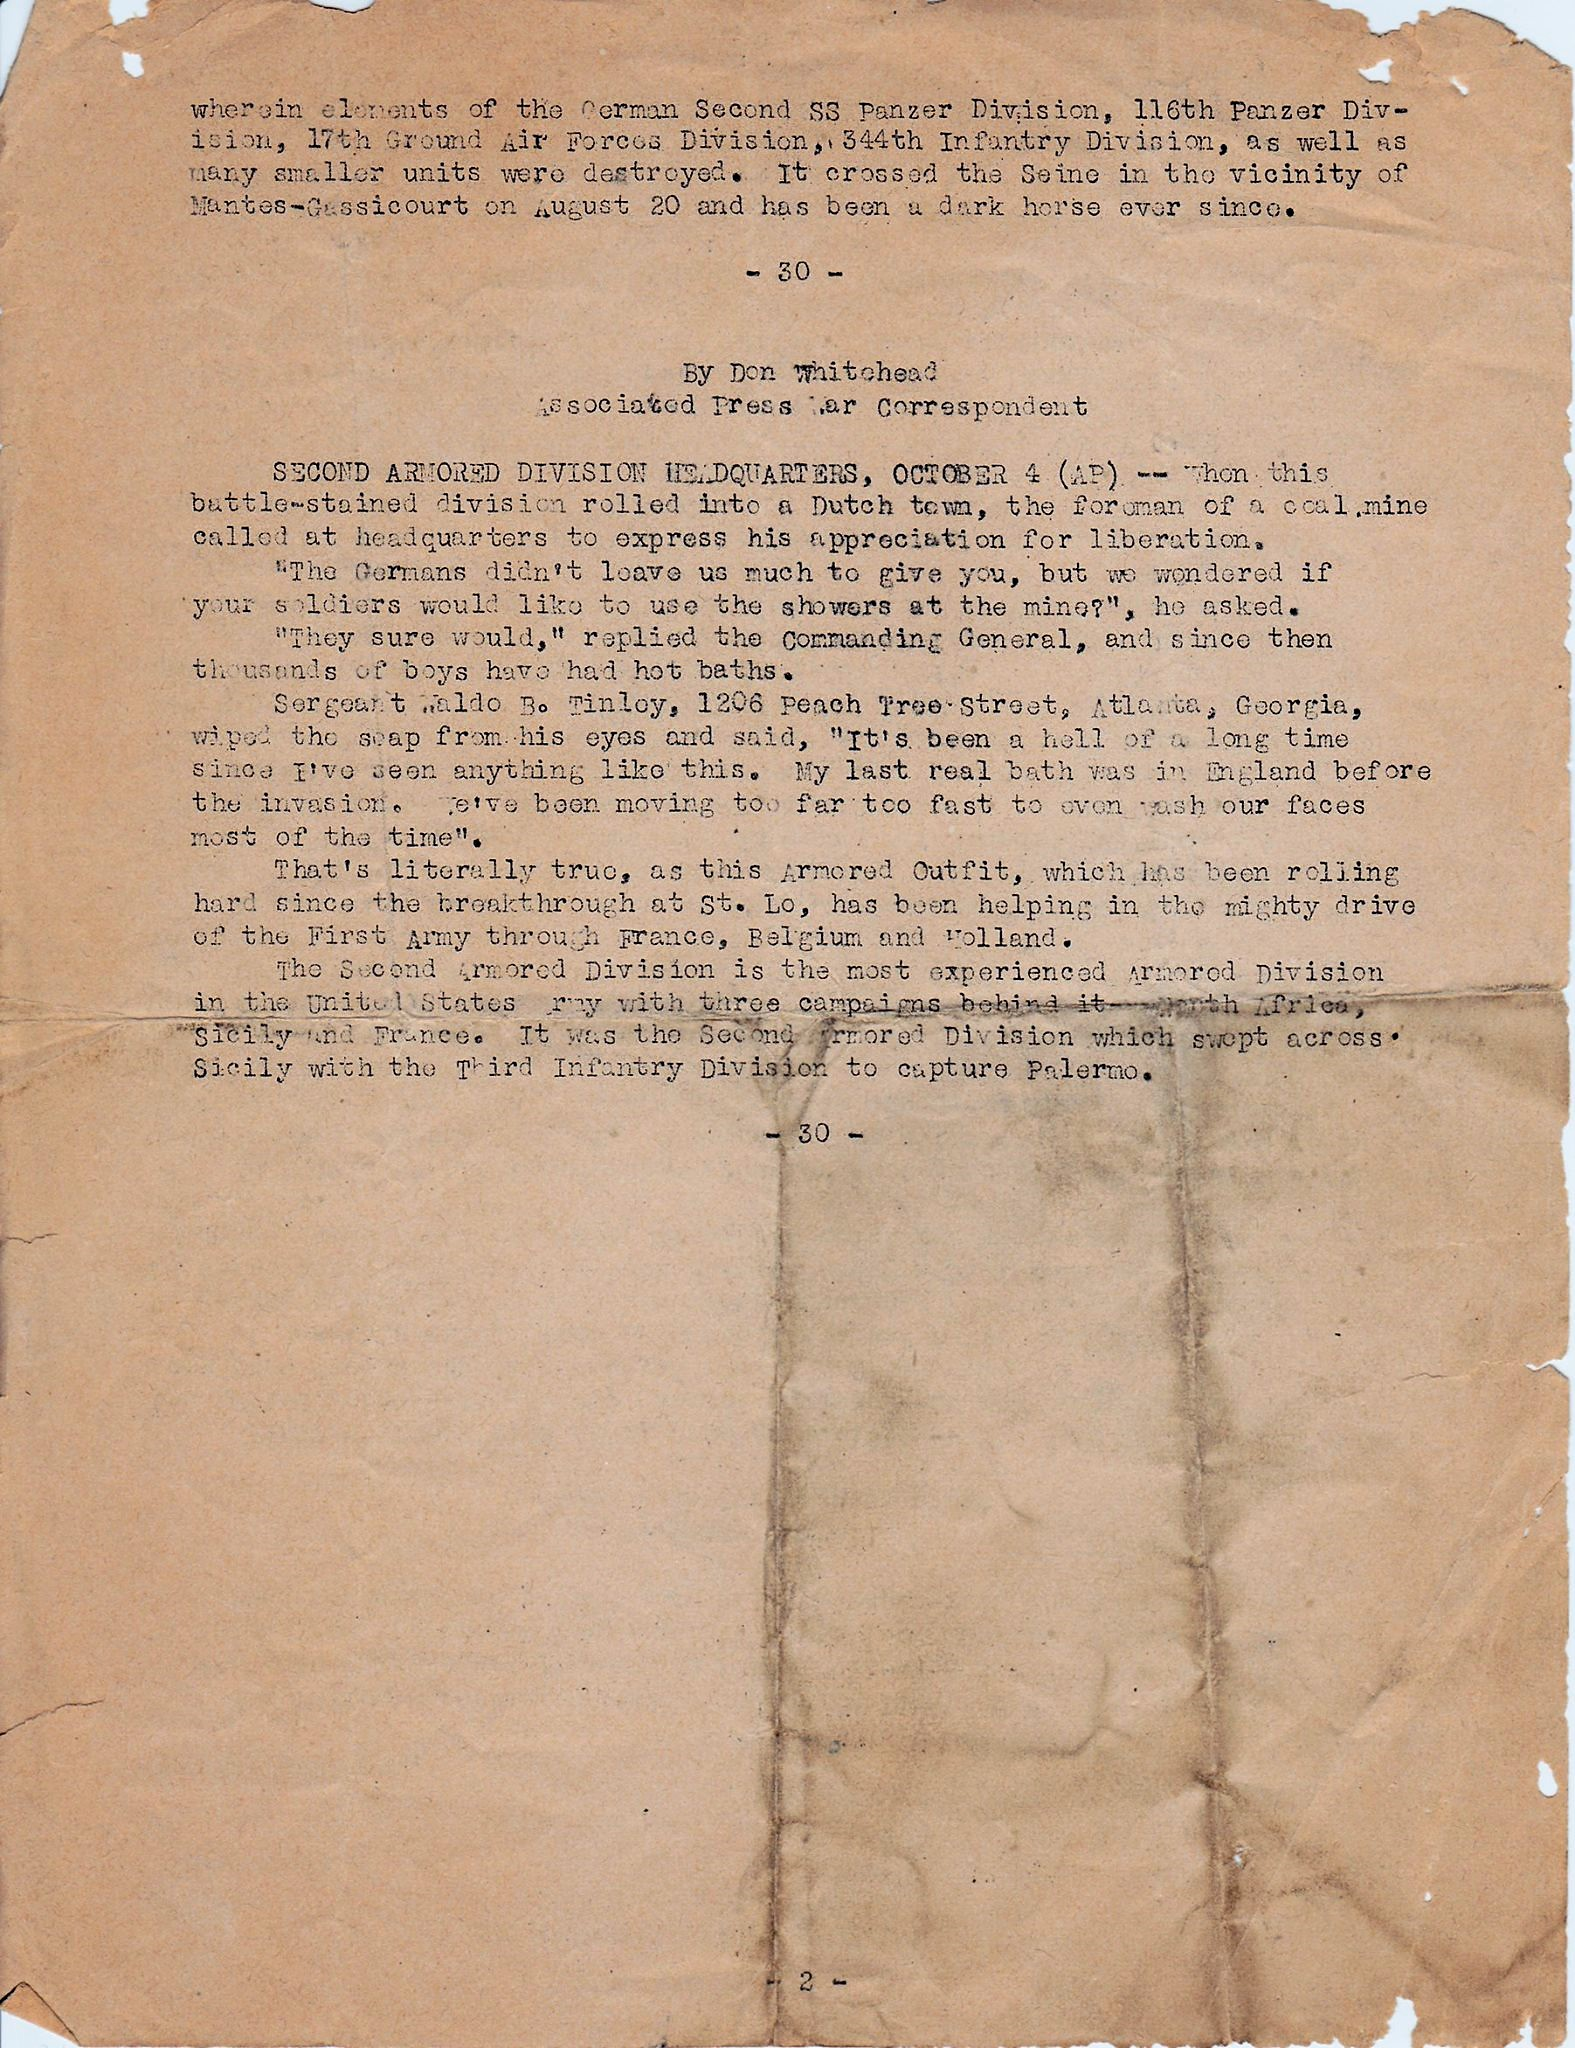 HQ 2nd AD 10/12/1944 page 2